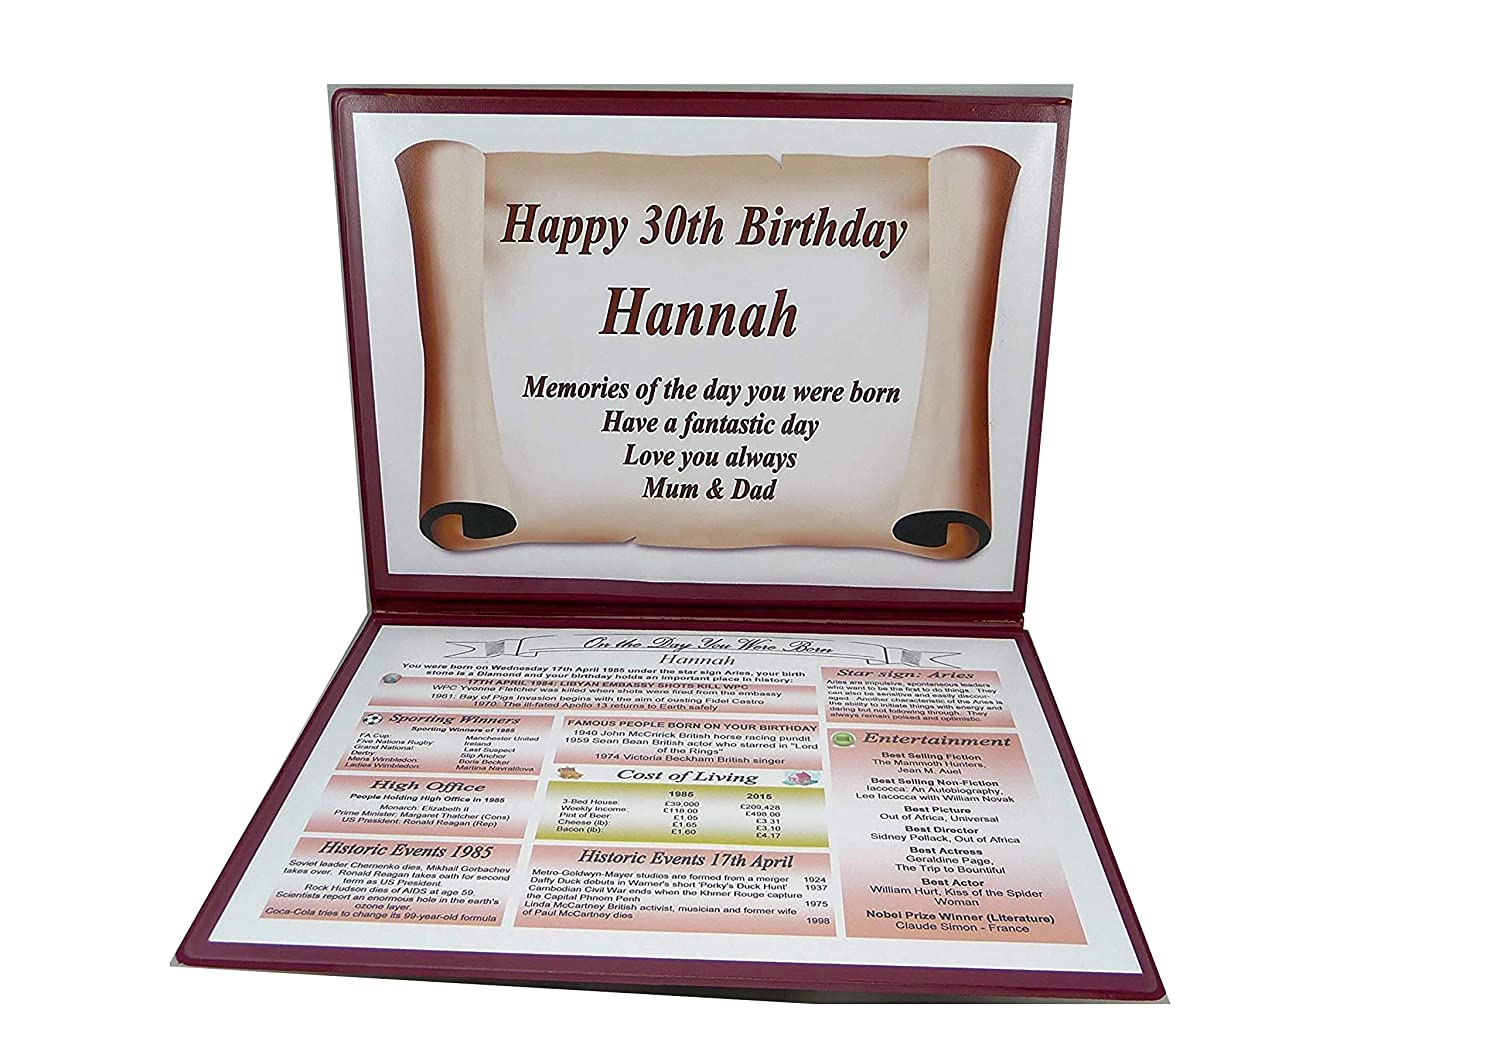 THE DAY YOU WERE BORN HAPPY 30TH  BIRTHDAY  GIFT IDEAL KEEPSAKE.